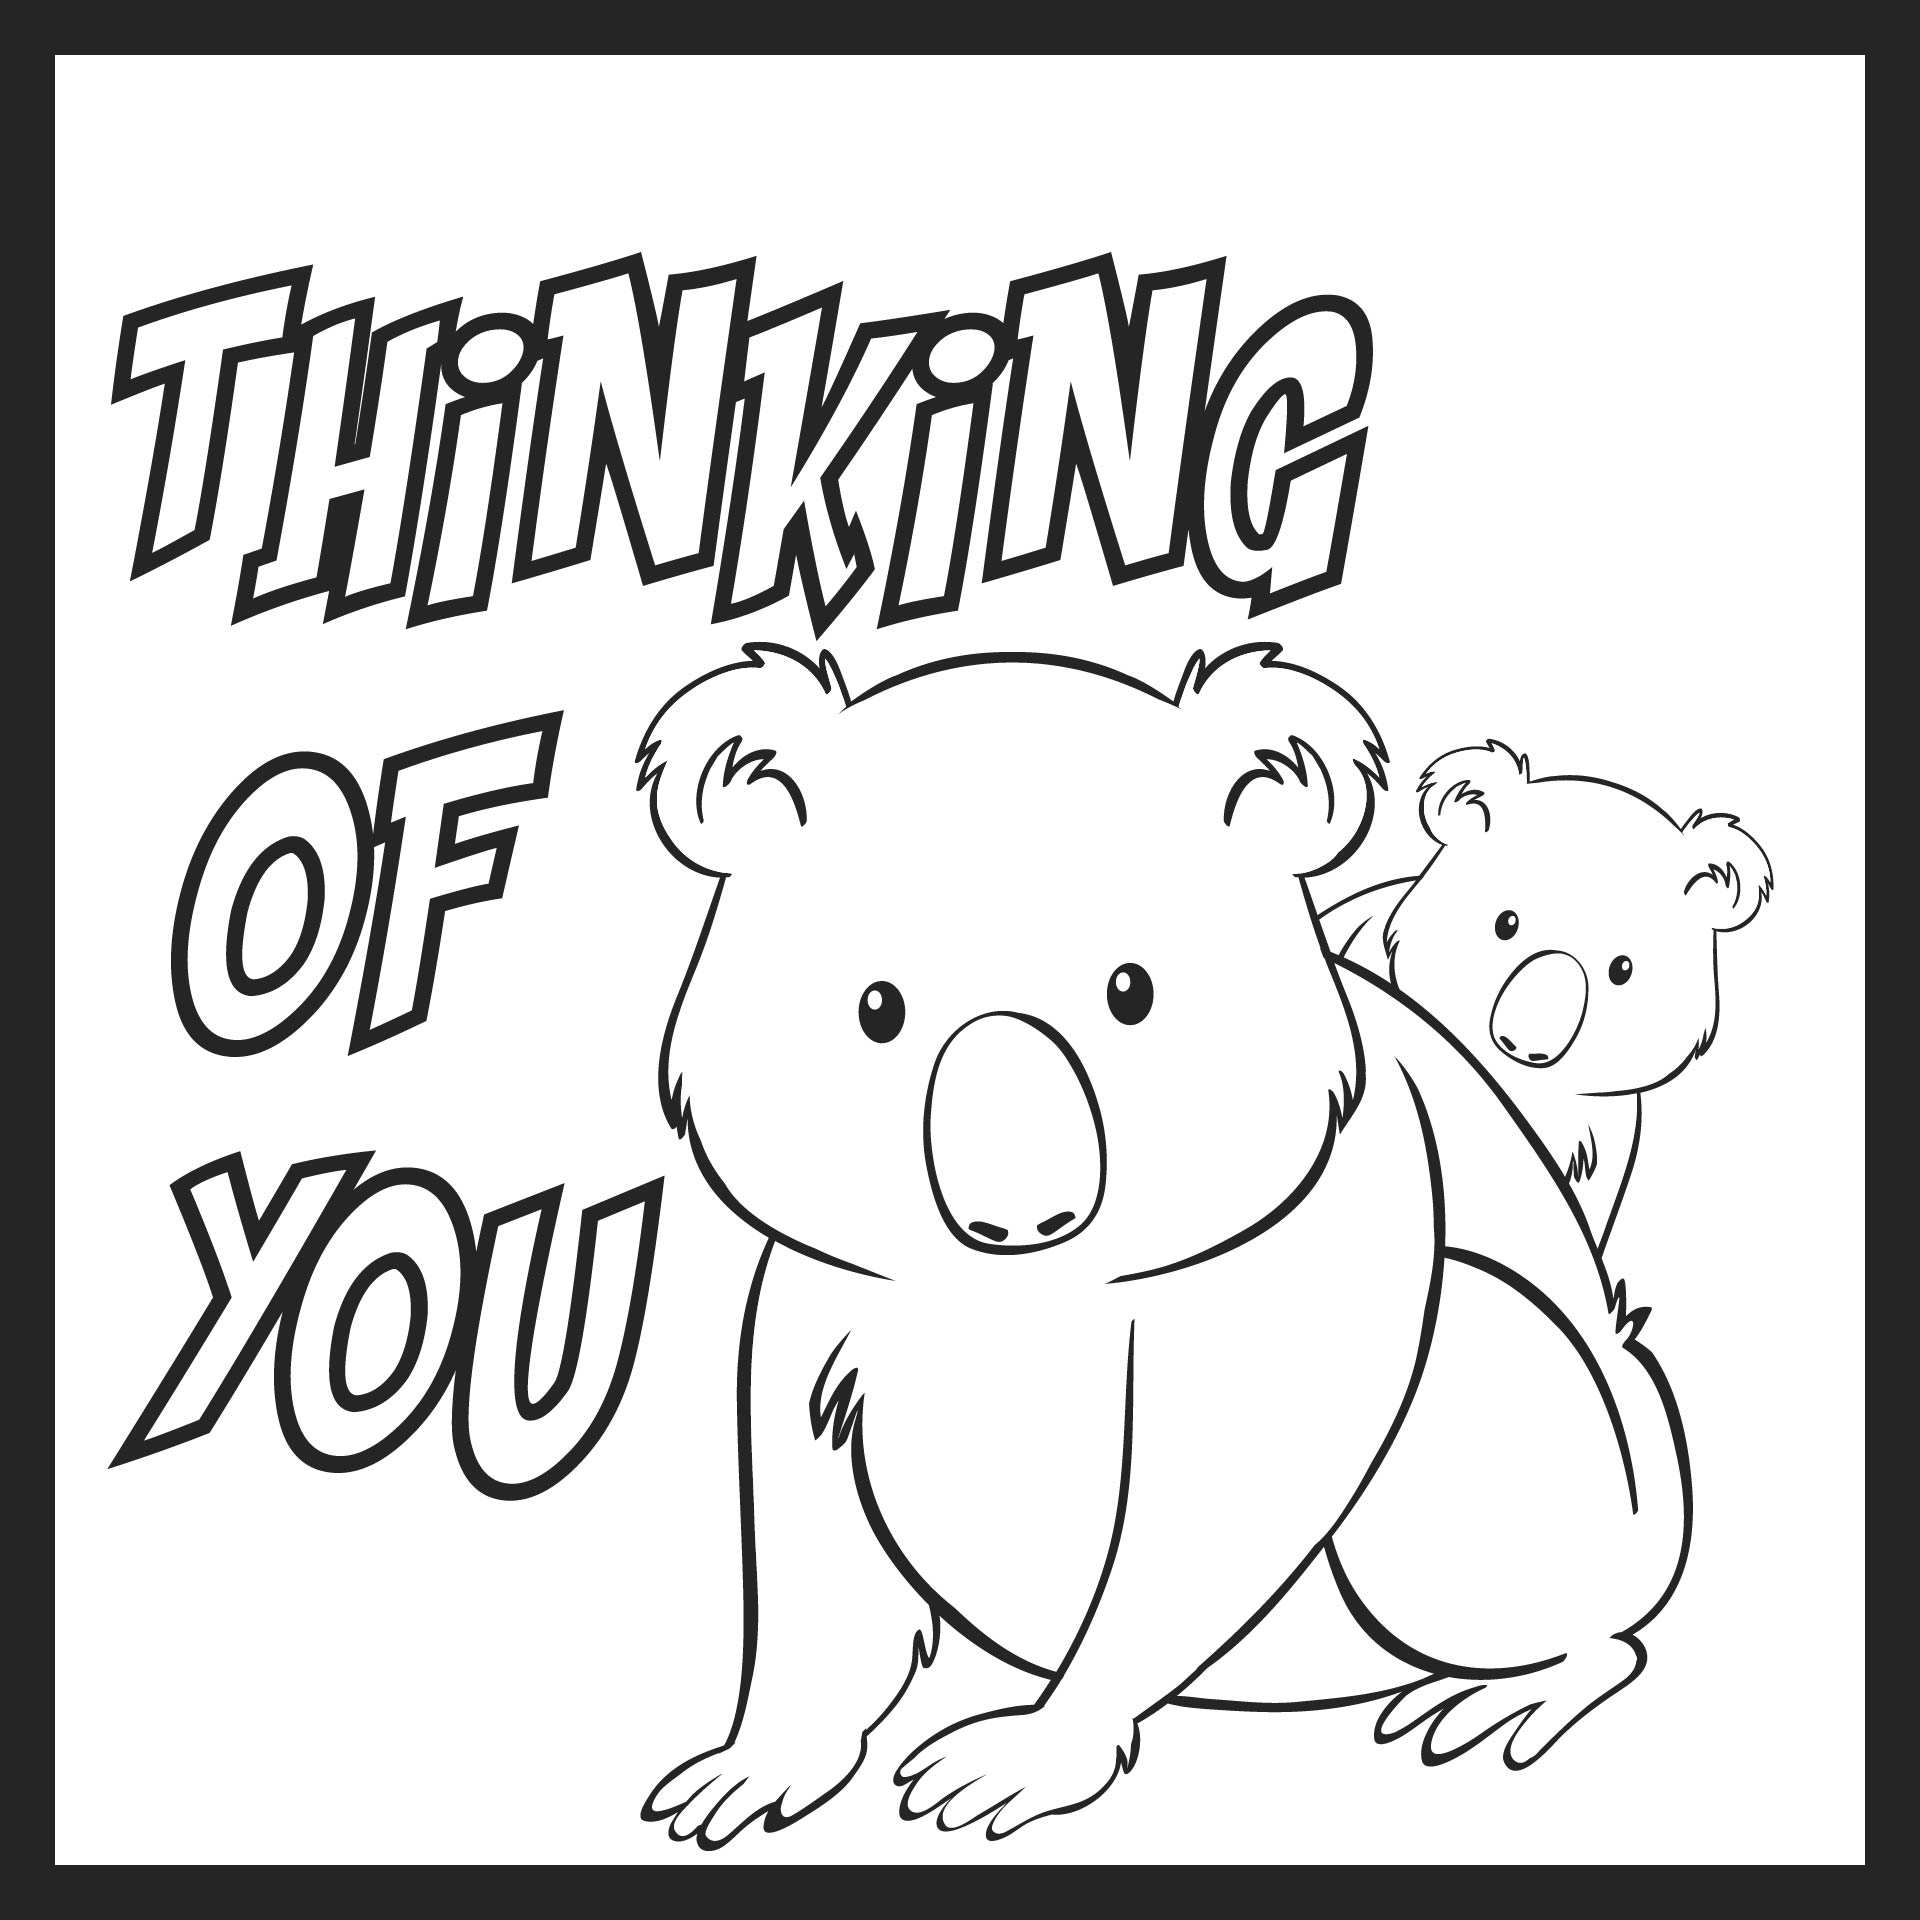 Thinking of You Card Coloring Pages